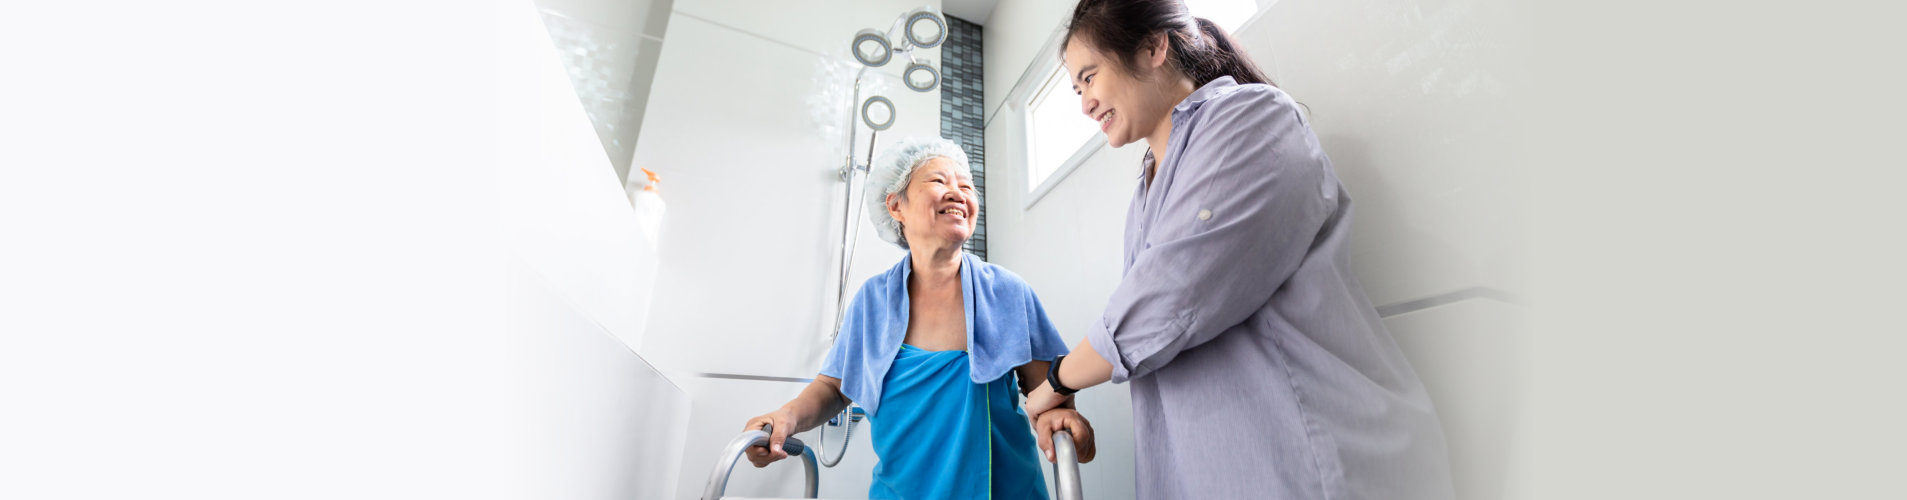 caregiver helping senior woman taking a shower